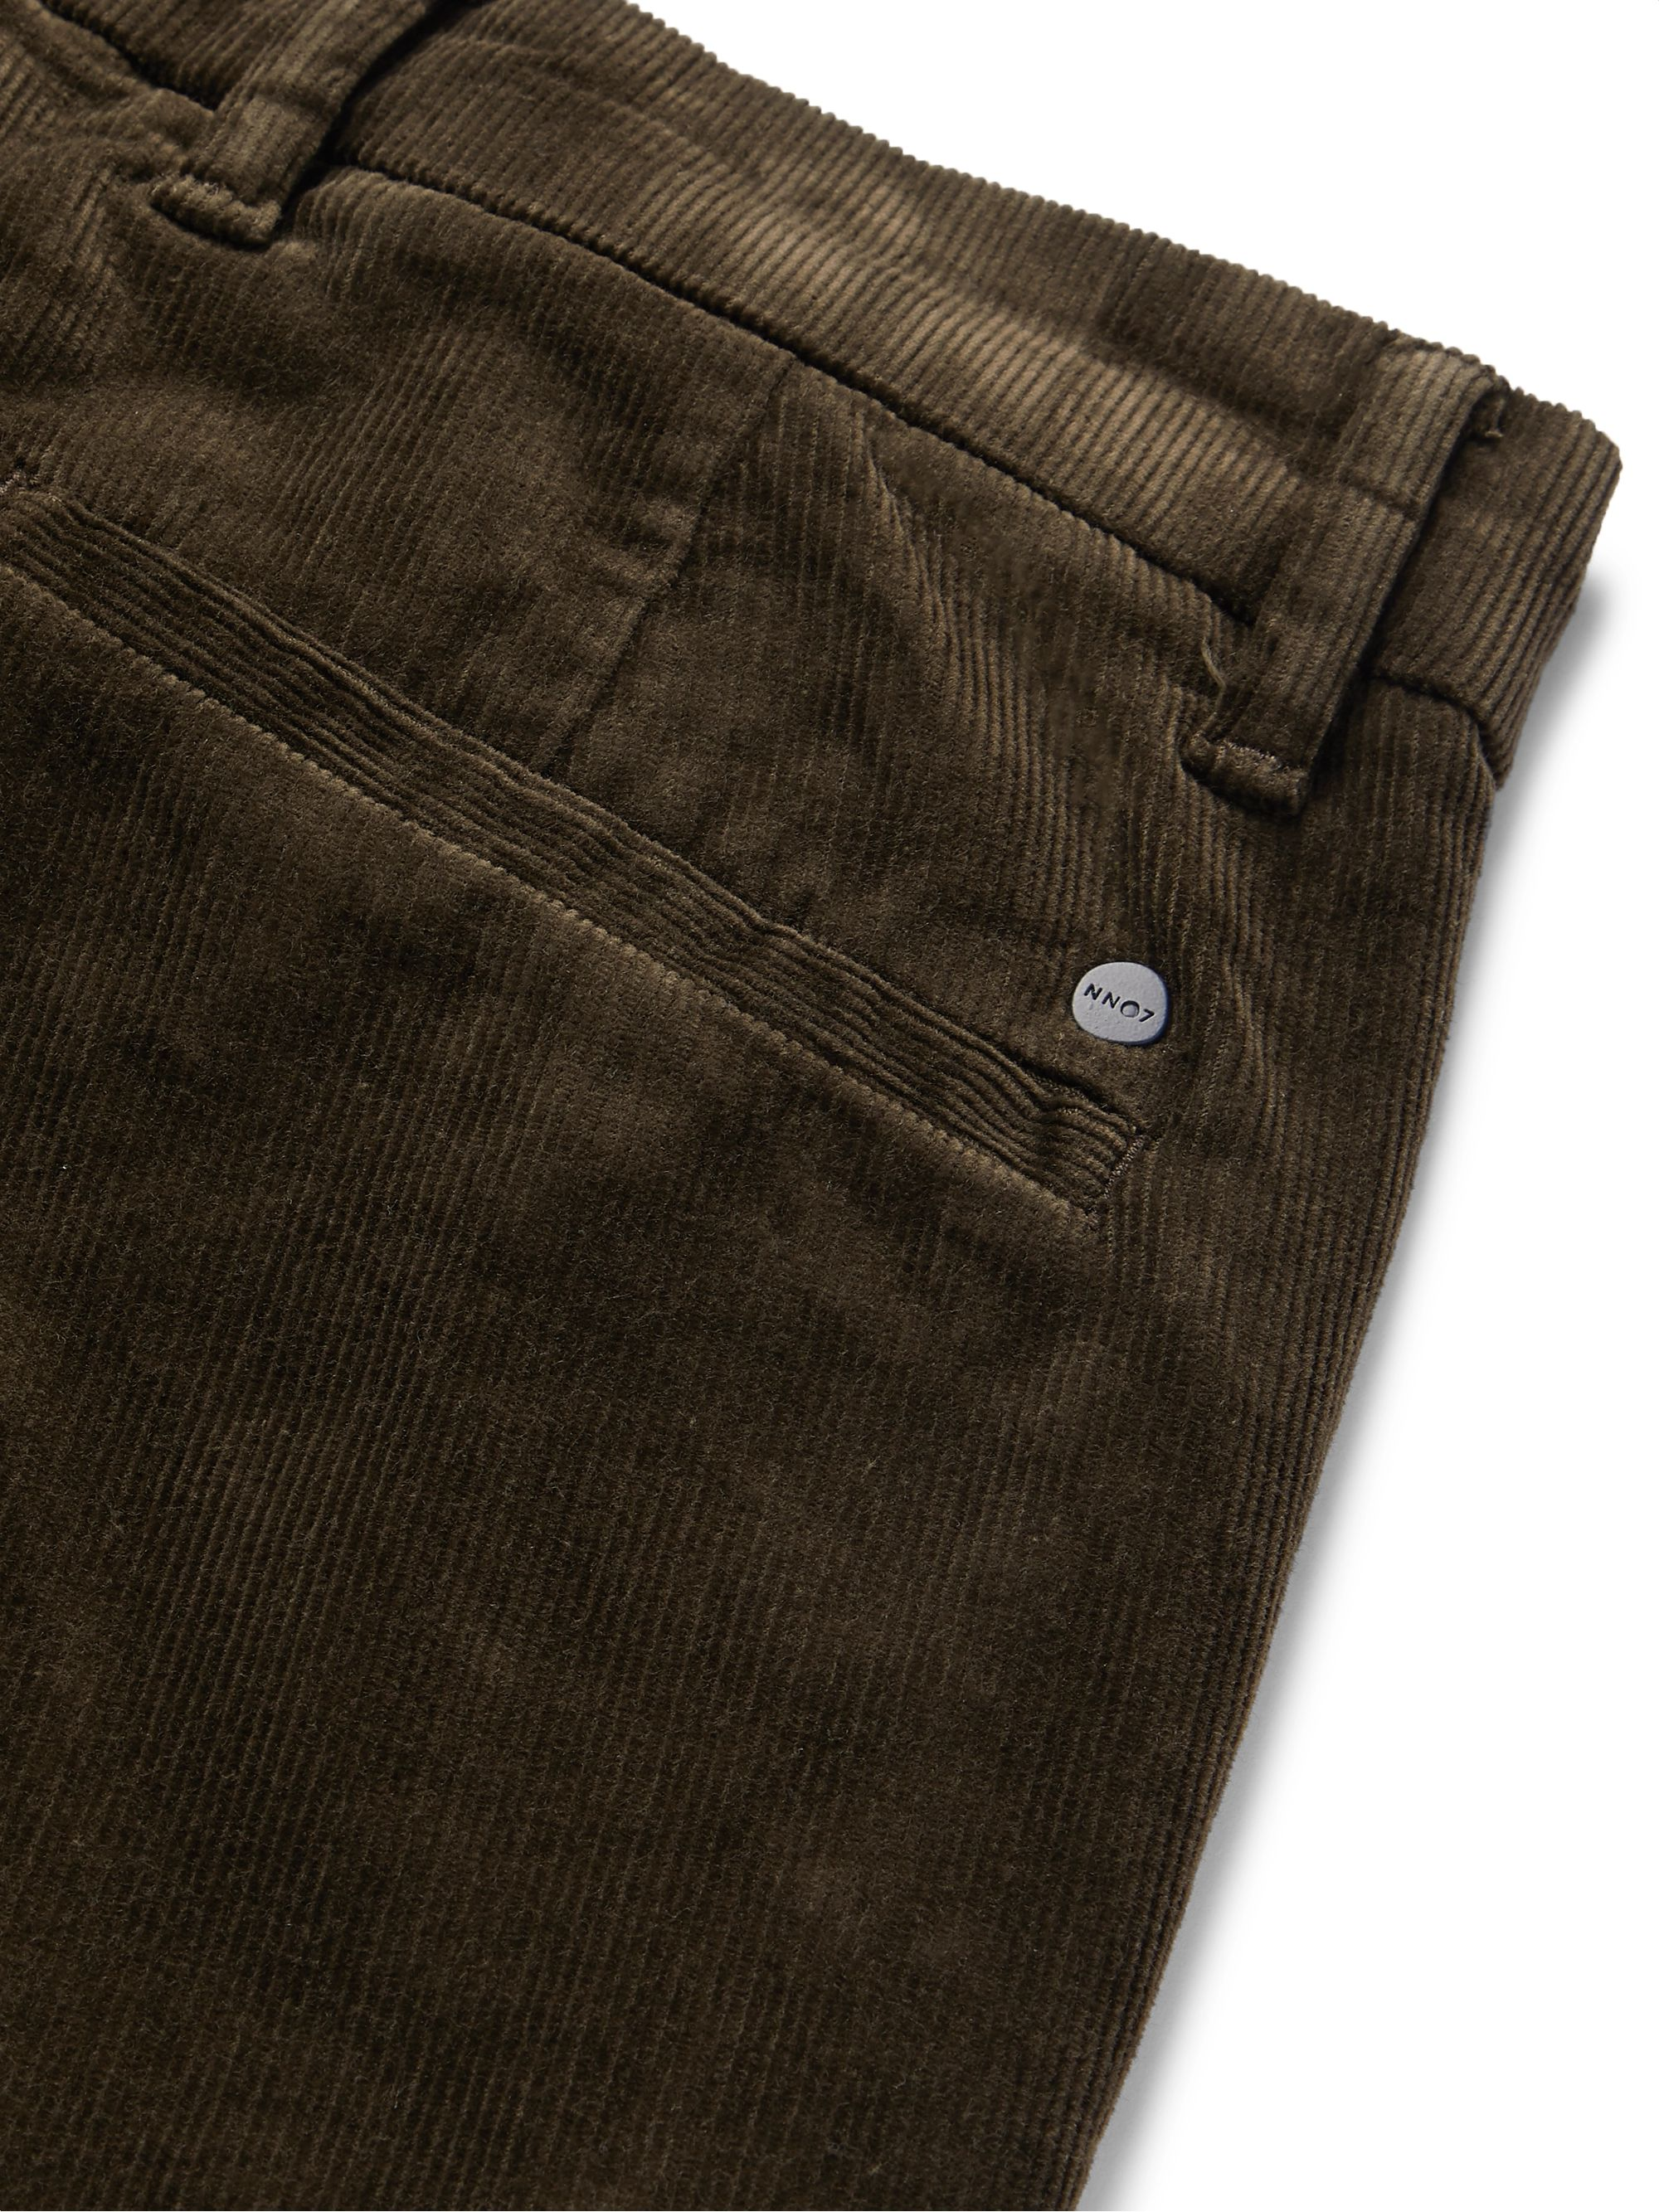 NN07 Tapered Cotton-Blend Corduroy Trousers